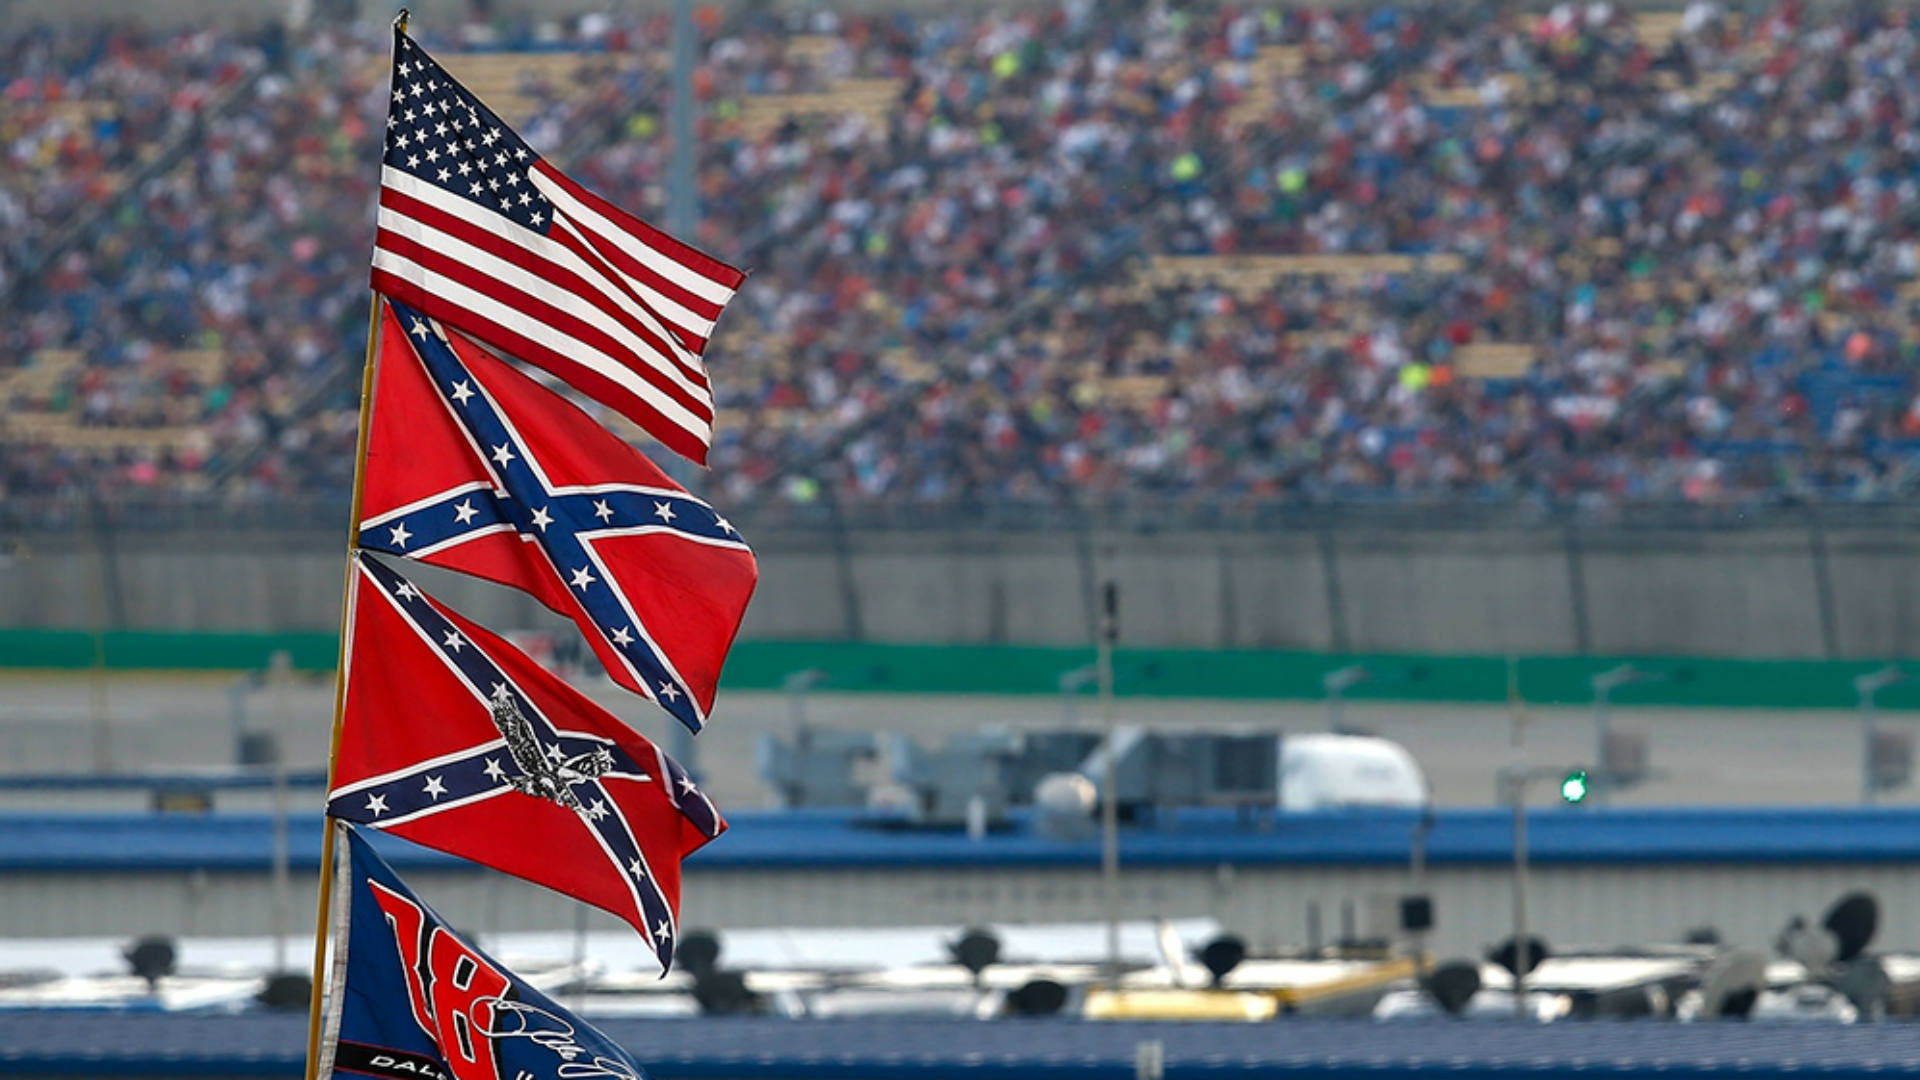 NASCAR fans react to Confederate flag ban with anger, relief and a bit of humor